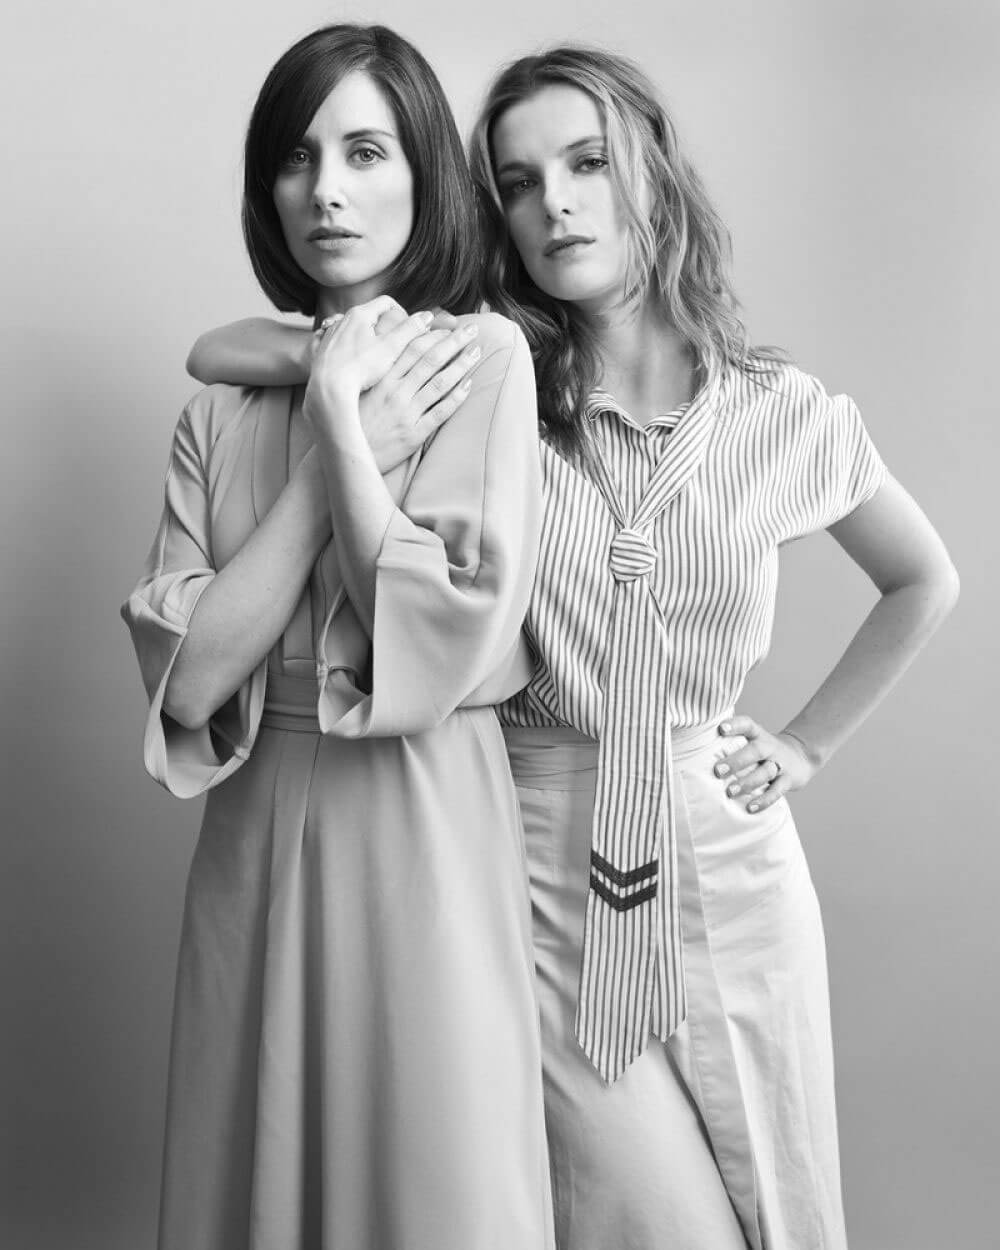 Alison Brie and Betty Gilpin Photoshoot for W Magazine July 2017